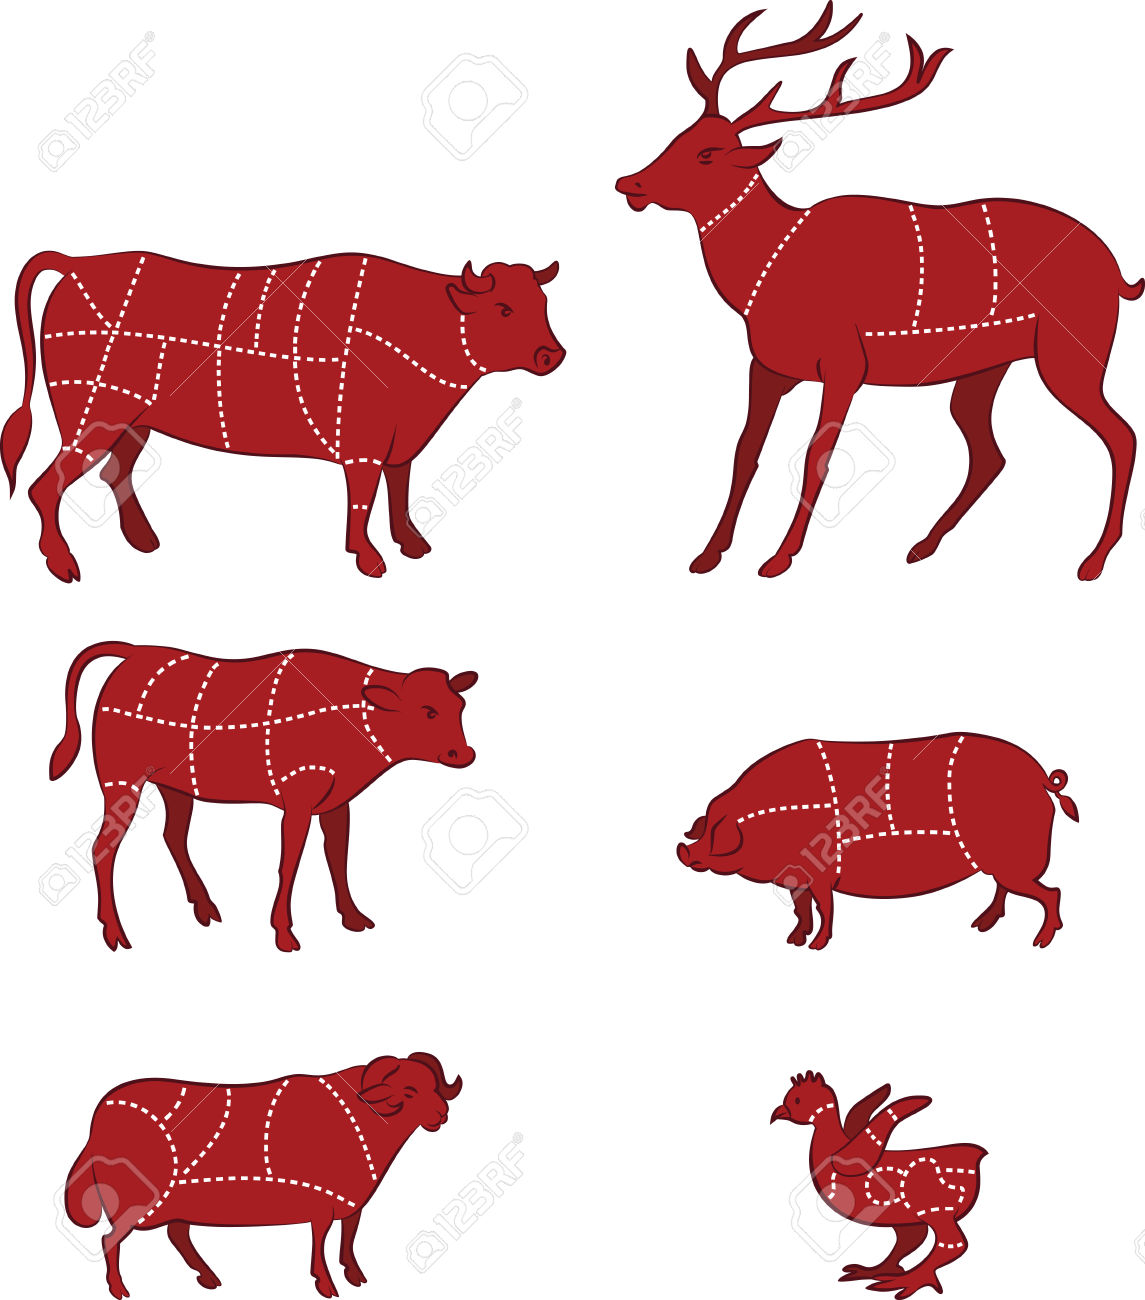 8,963 Cow Silhouette Cliparts, Stock Vector And Royalty Free Cow.